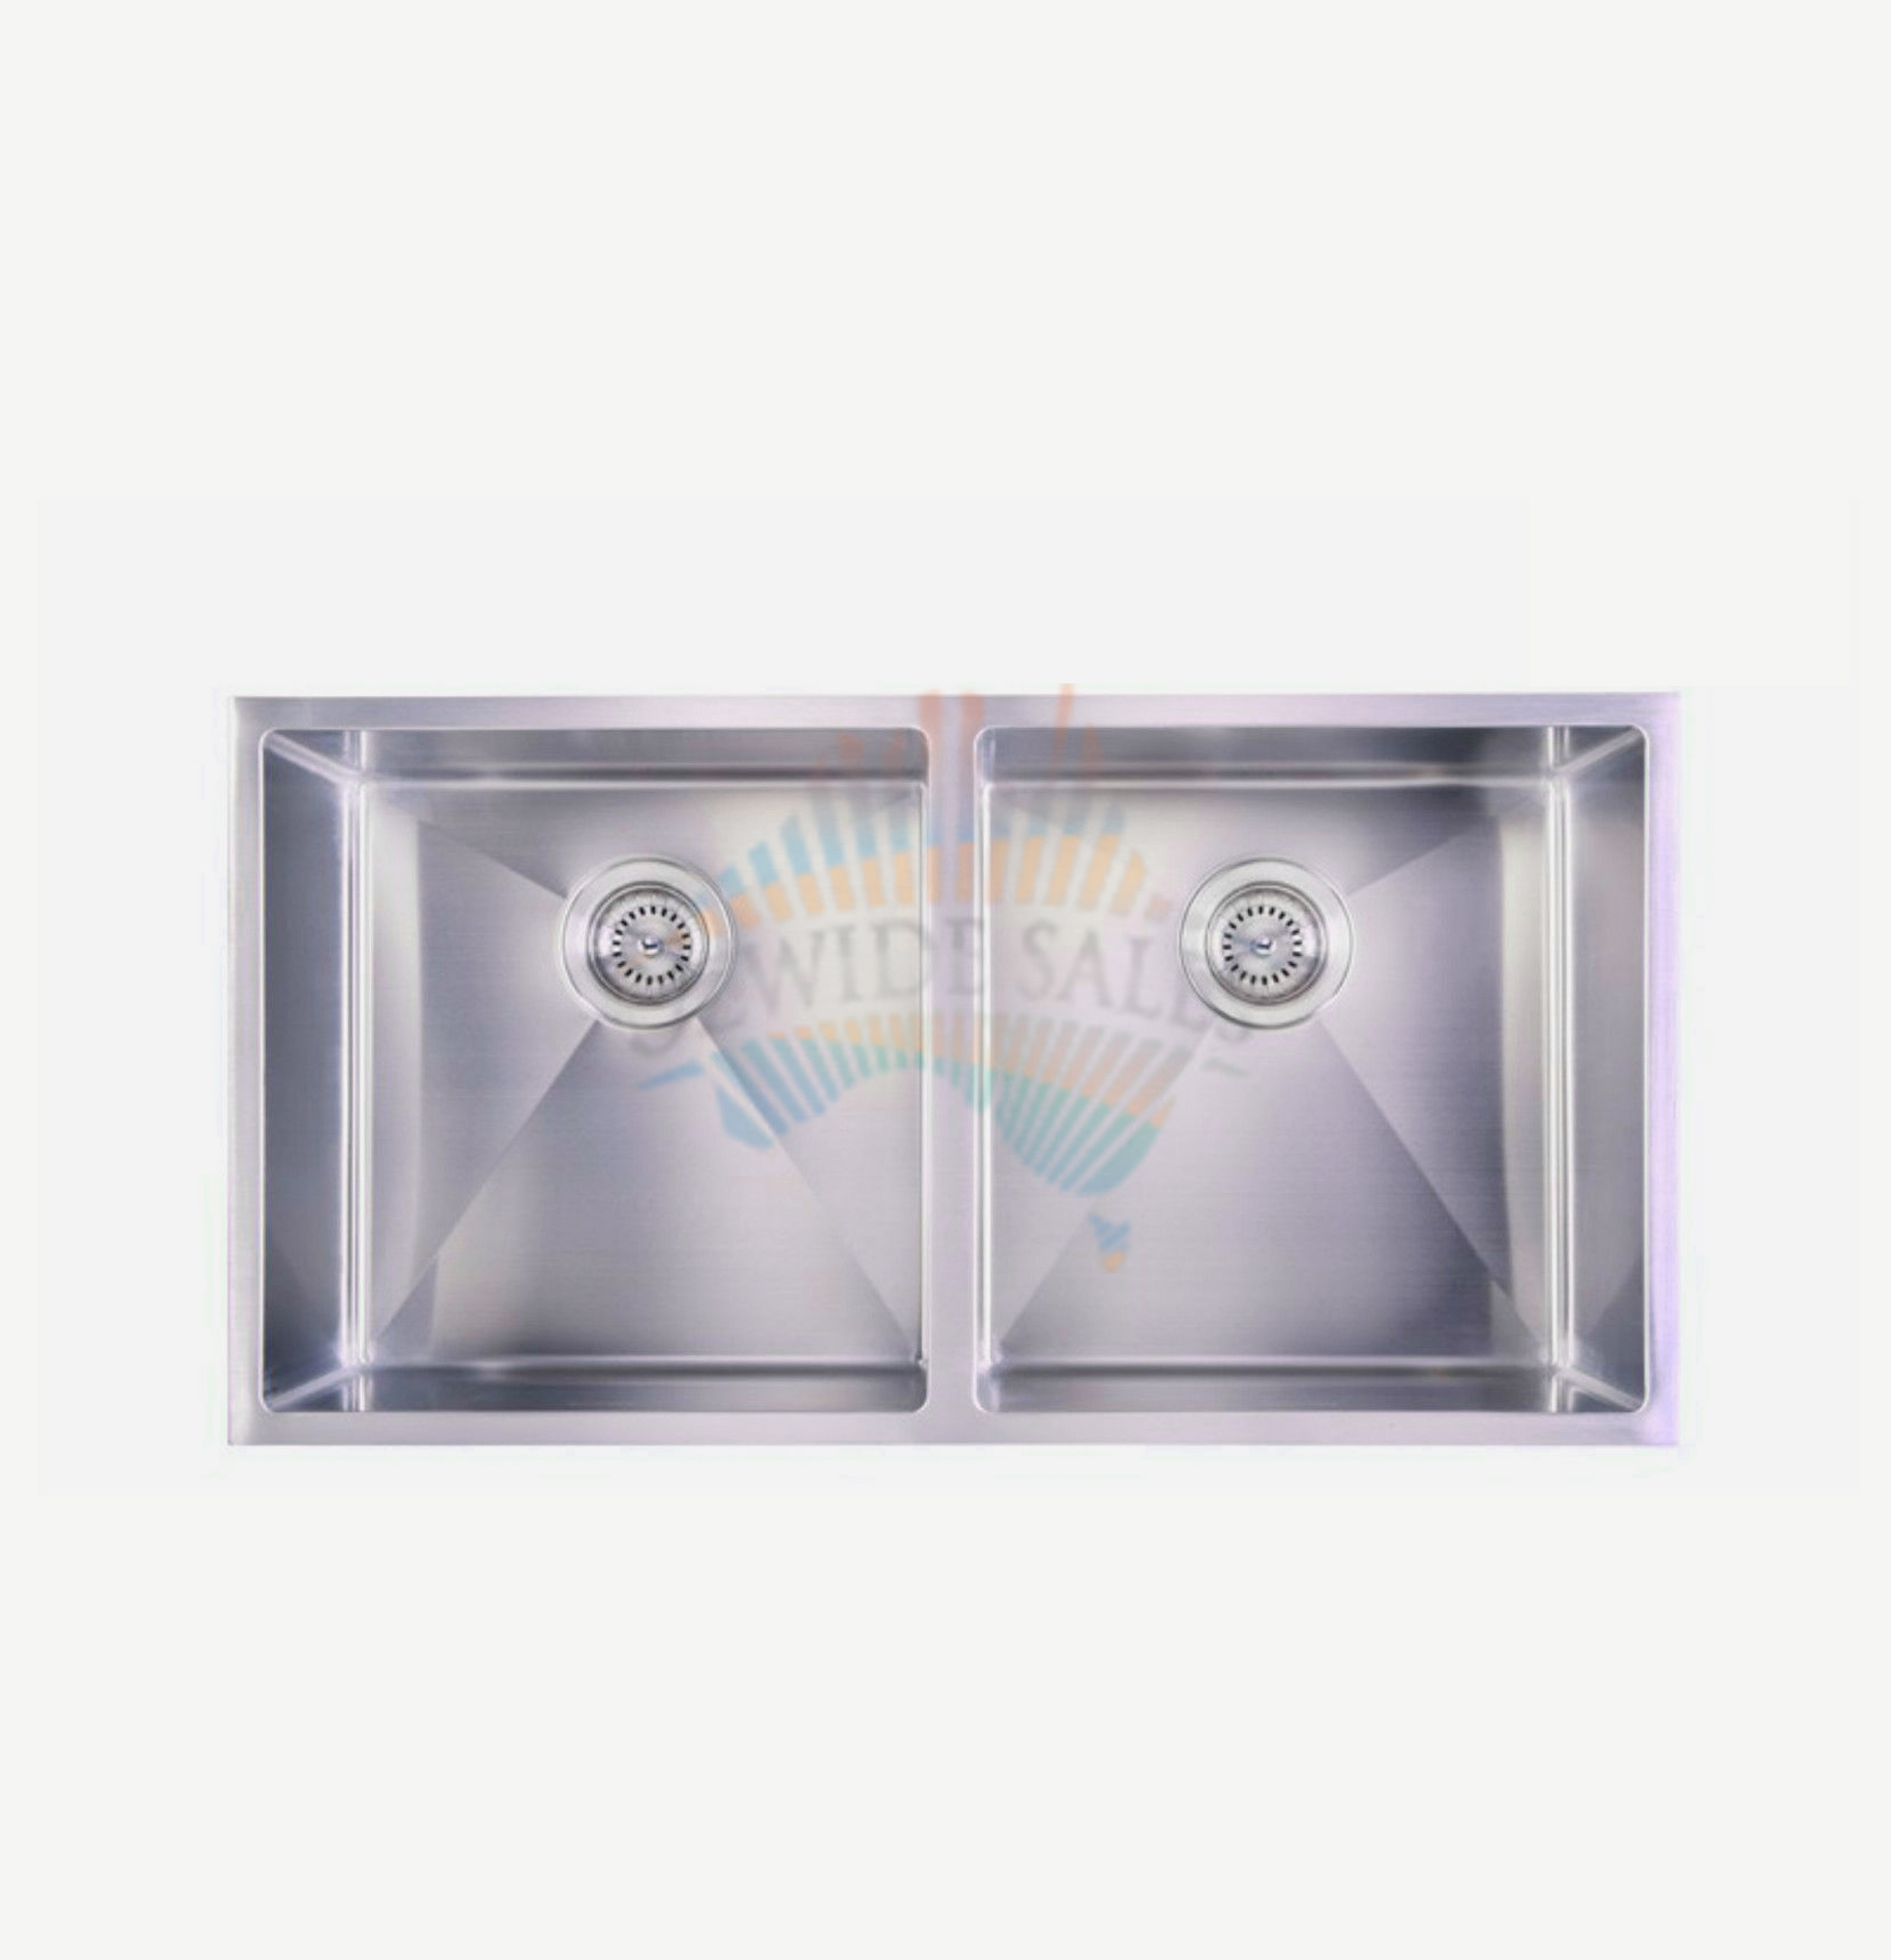 Laundry Double Sink : ... Double Bowl Kitchen Sink 304 Stainless Steel Laundry Top Undermount